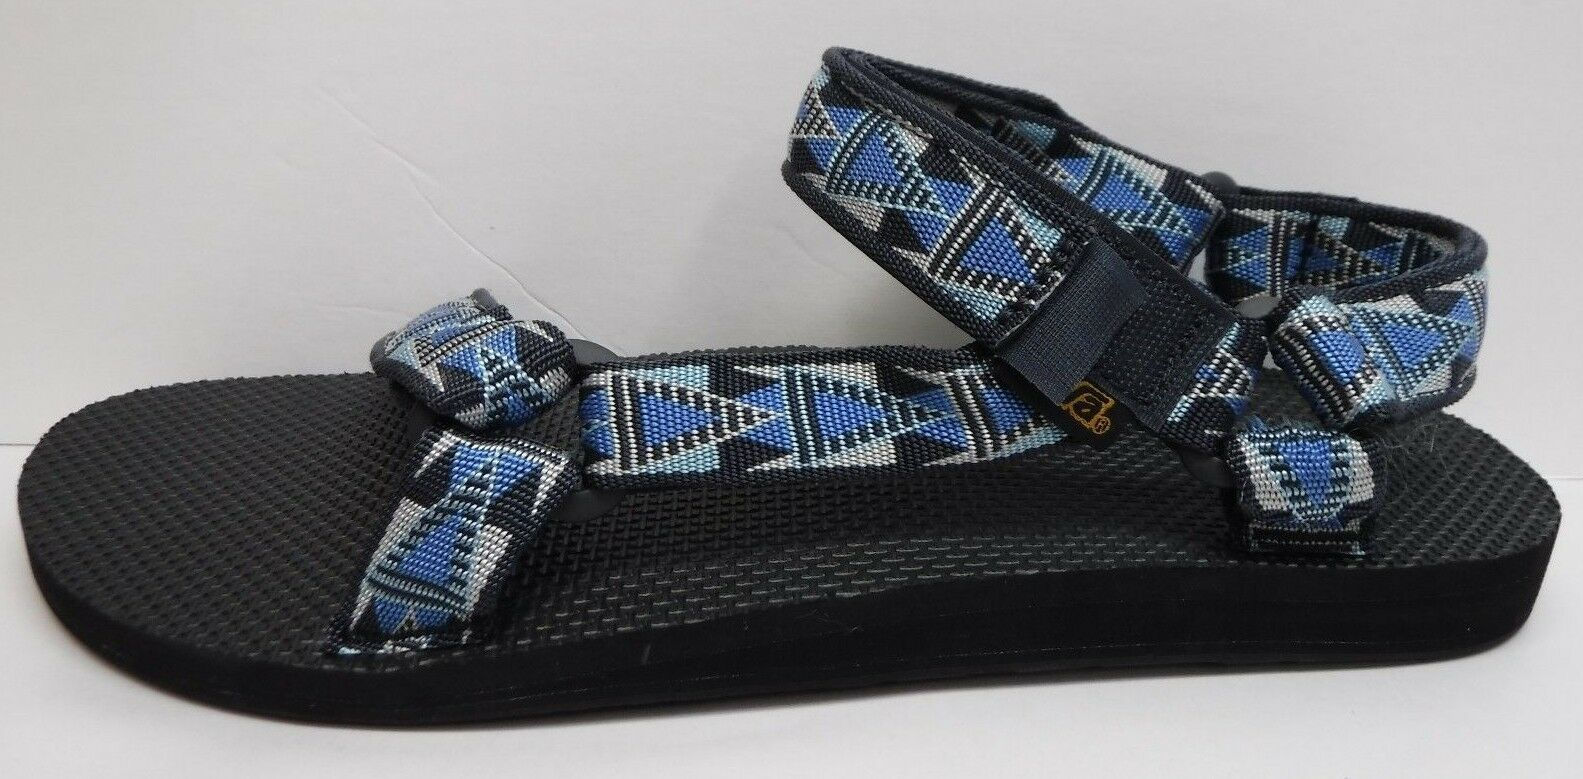 Teva Size 9 bluee Sandals New Mens shoes shoes shoes ad6856